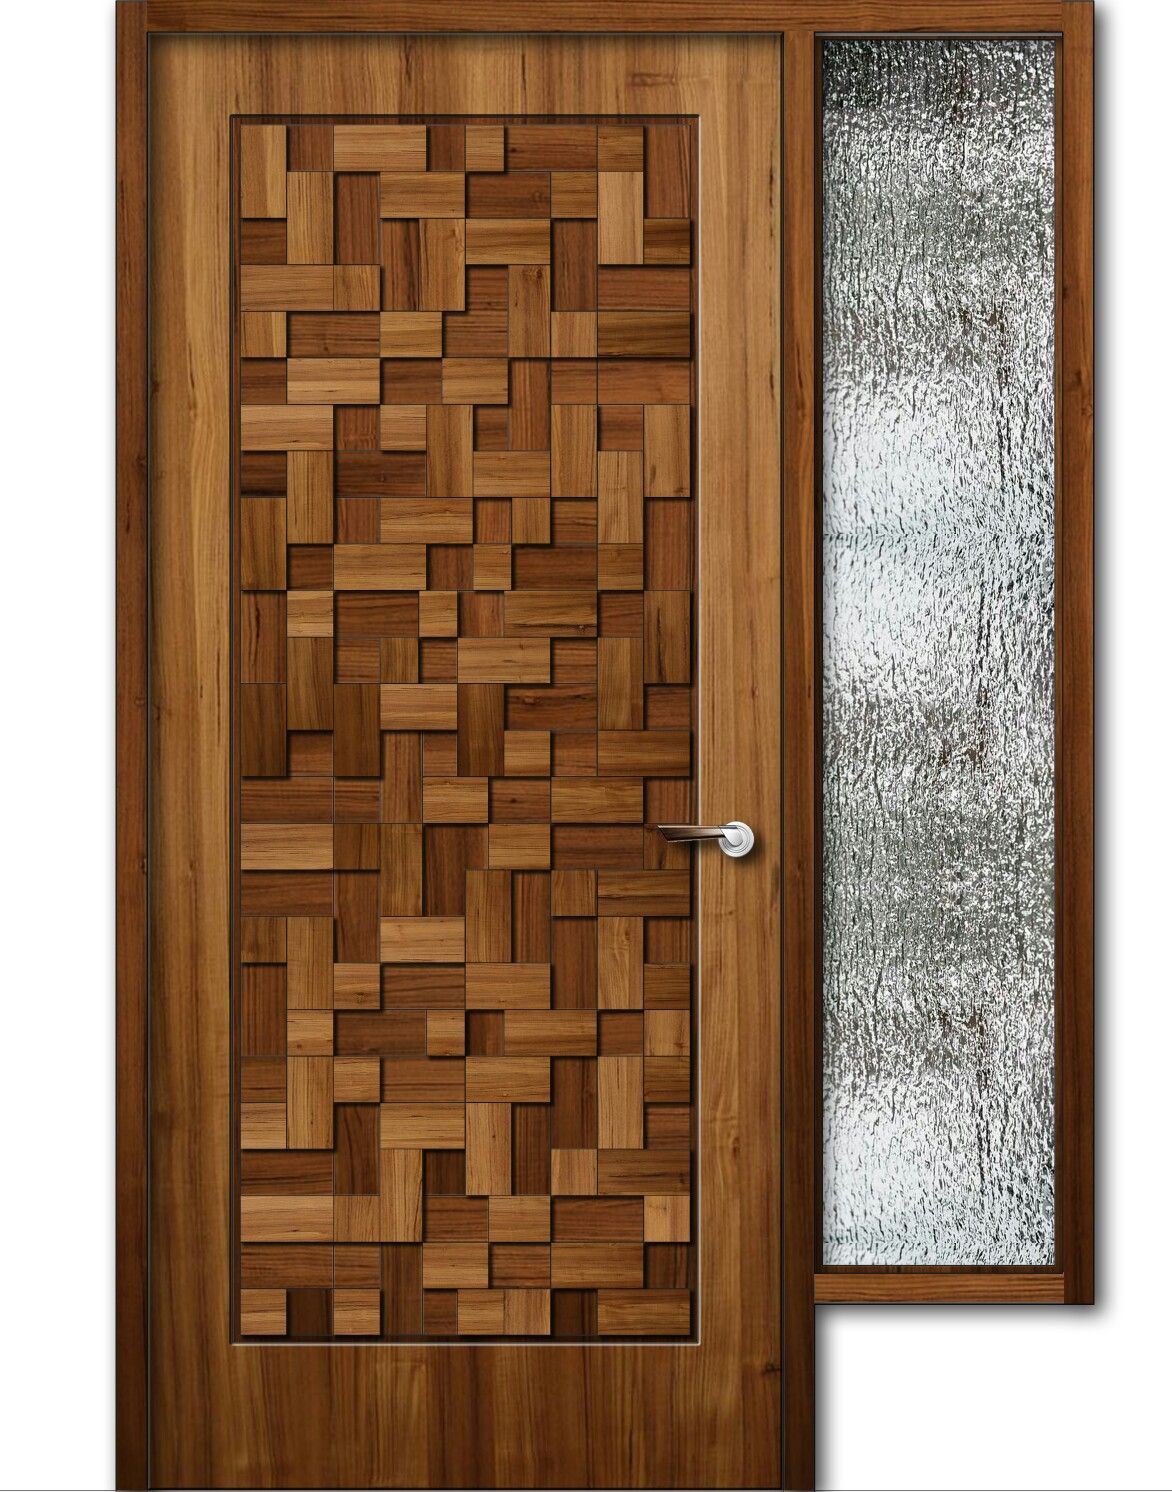 Teak wood finish wooden door with window 8feet height for Designer door design